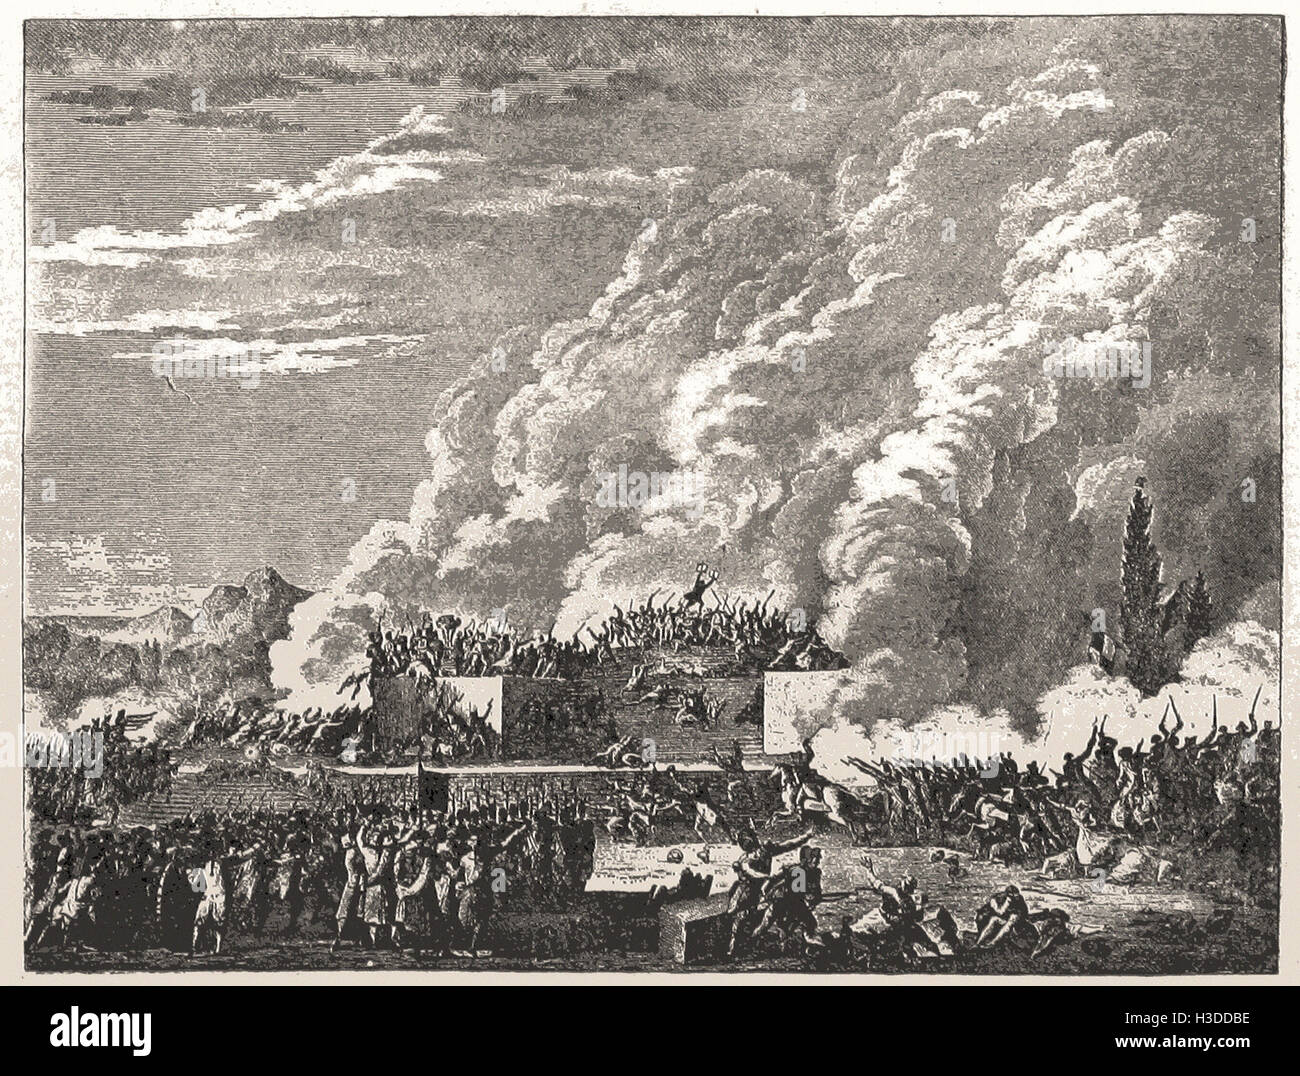 MASSACRE OF THE CHAMP DE MARS, JULY, 1791 - Stock Image